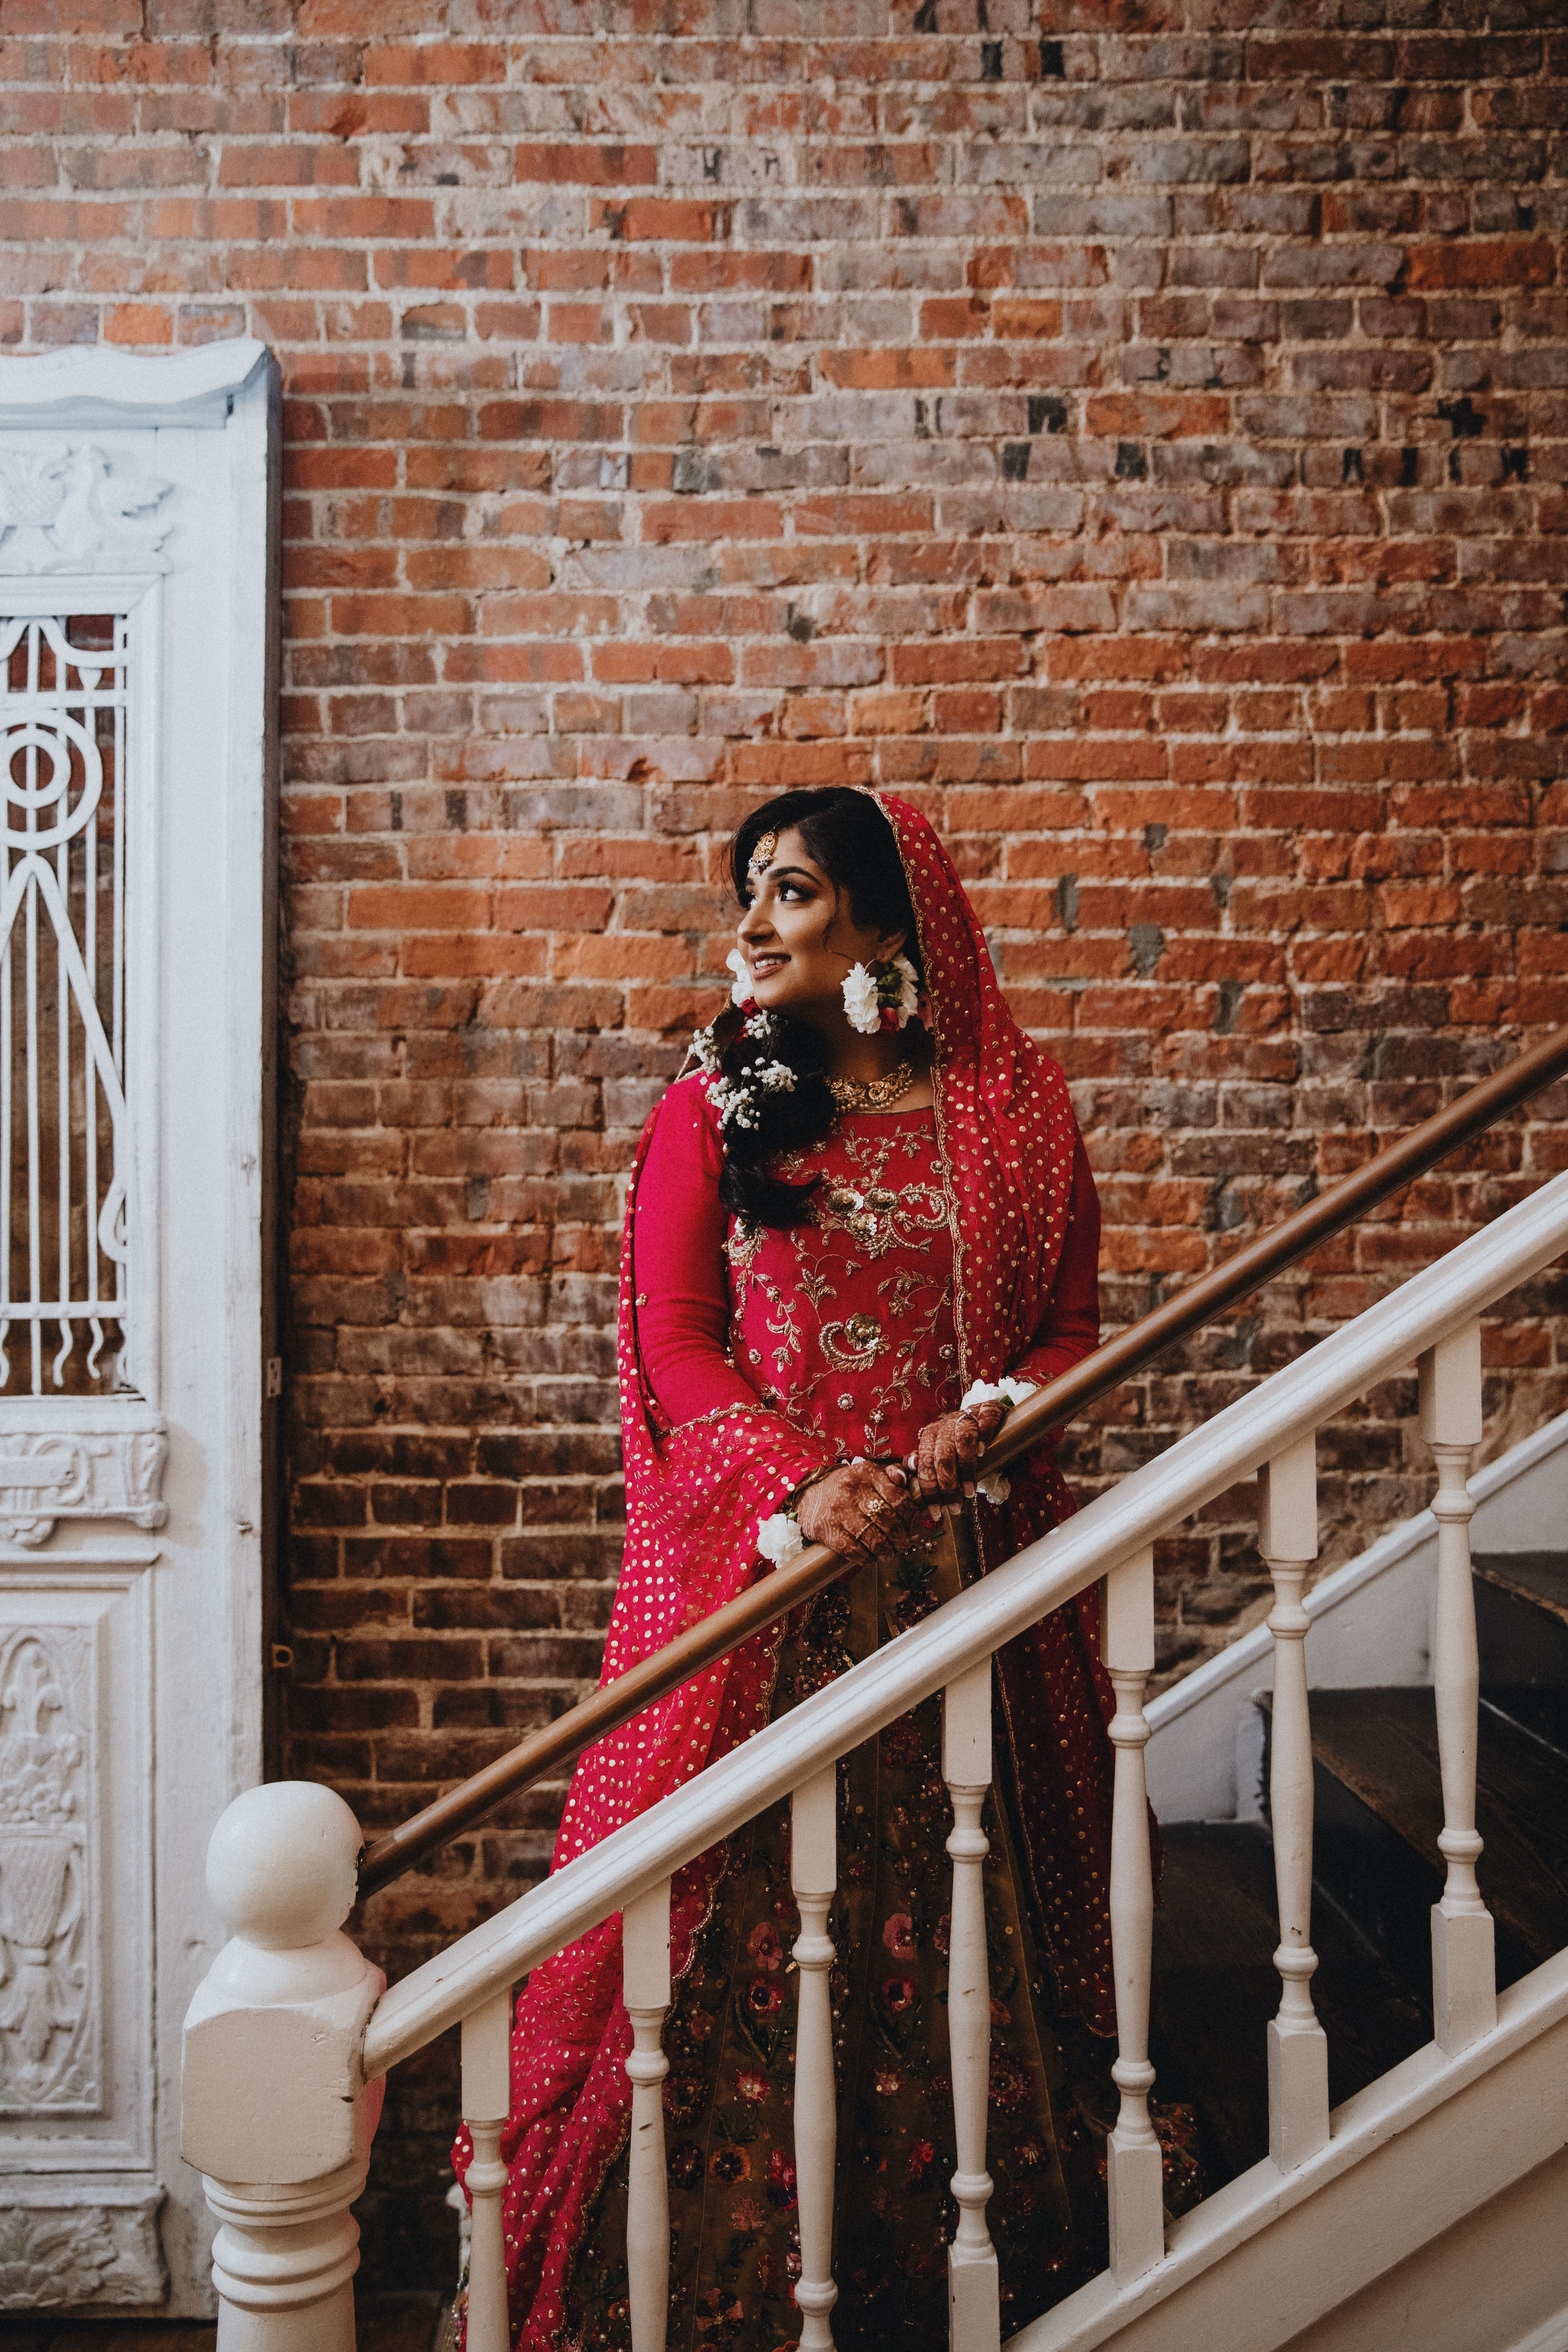 Use unique locations around your wedding venue as backdrops for portraits! This unique 1900's building has a vintage vibe that made this look come together. #mehndibride #mehndidesigns #mehndidress #vintage